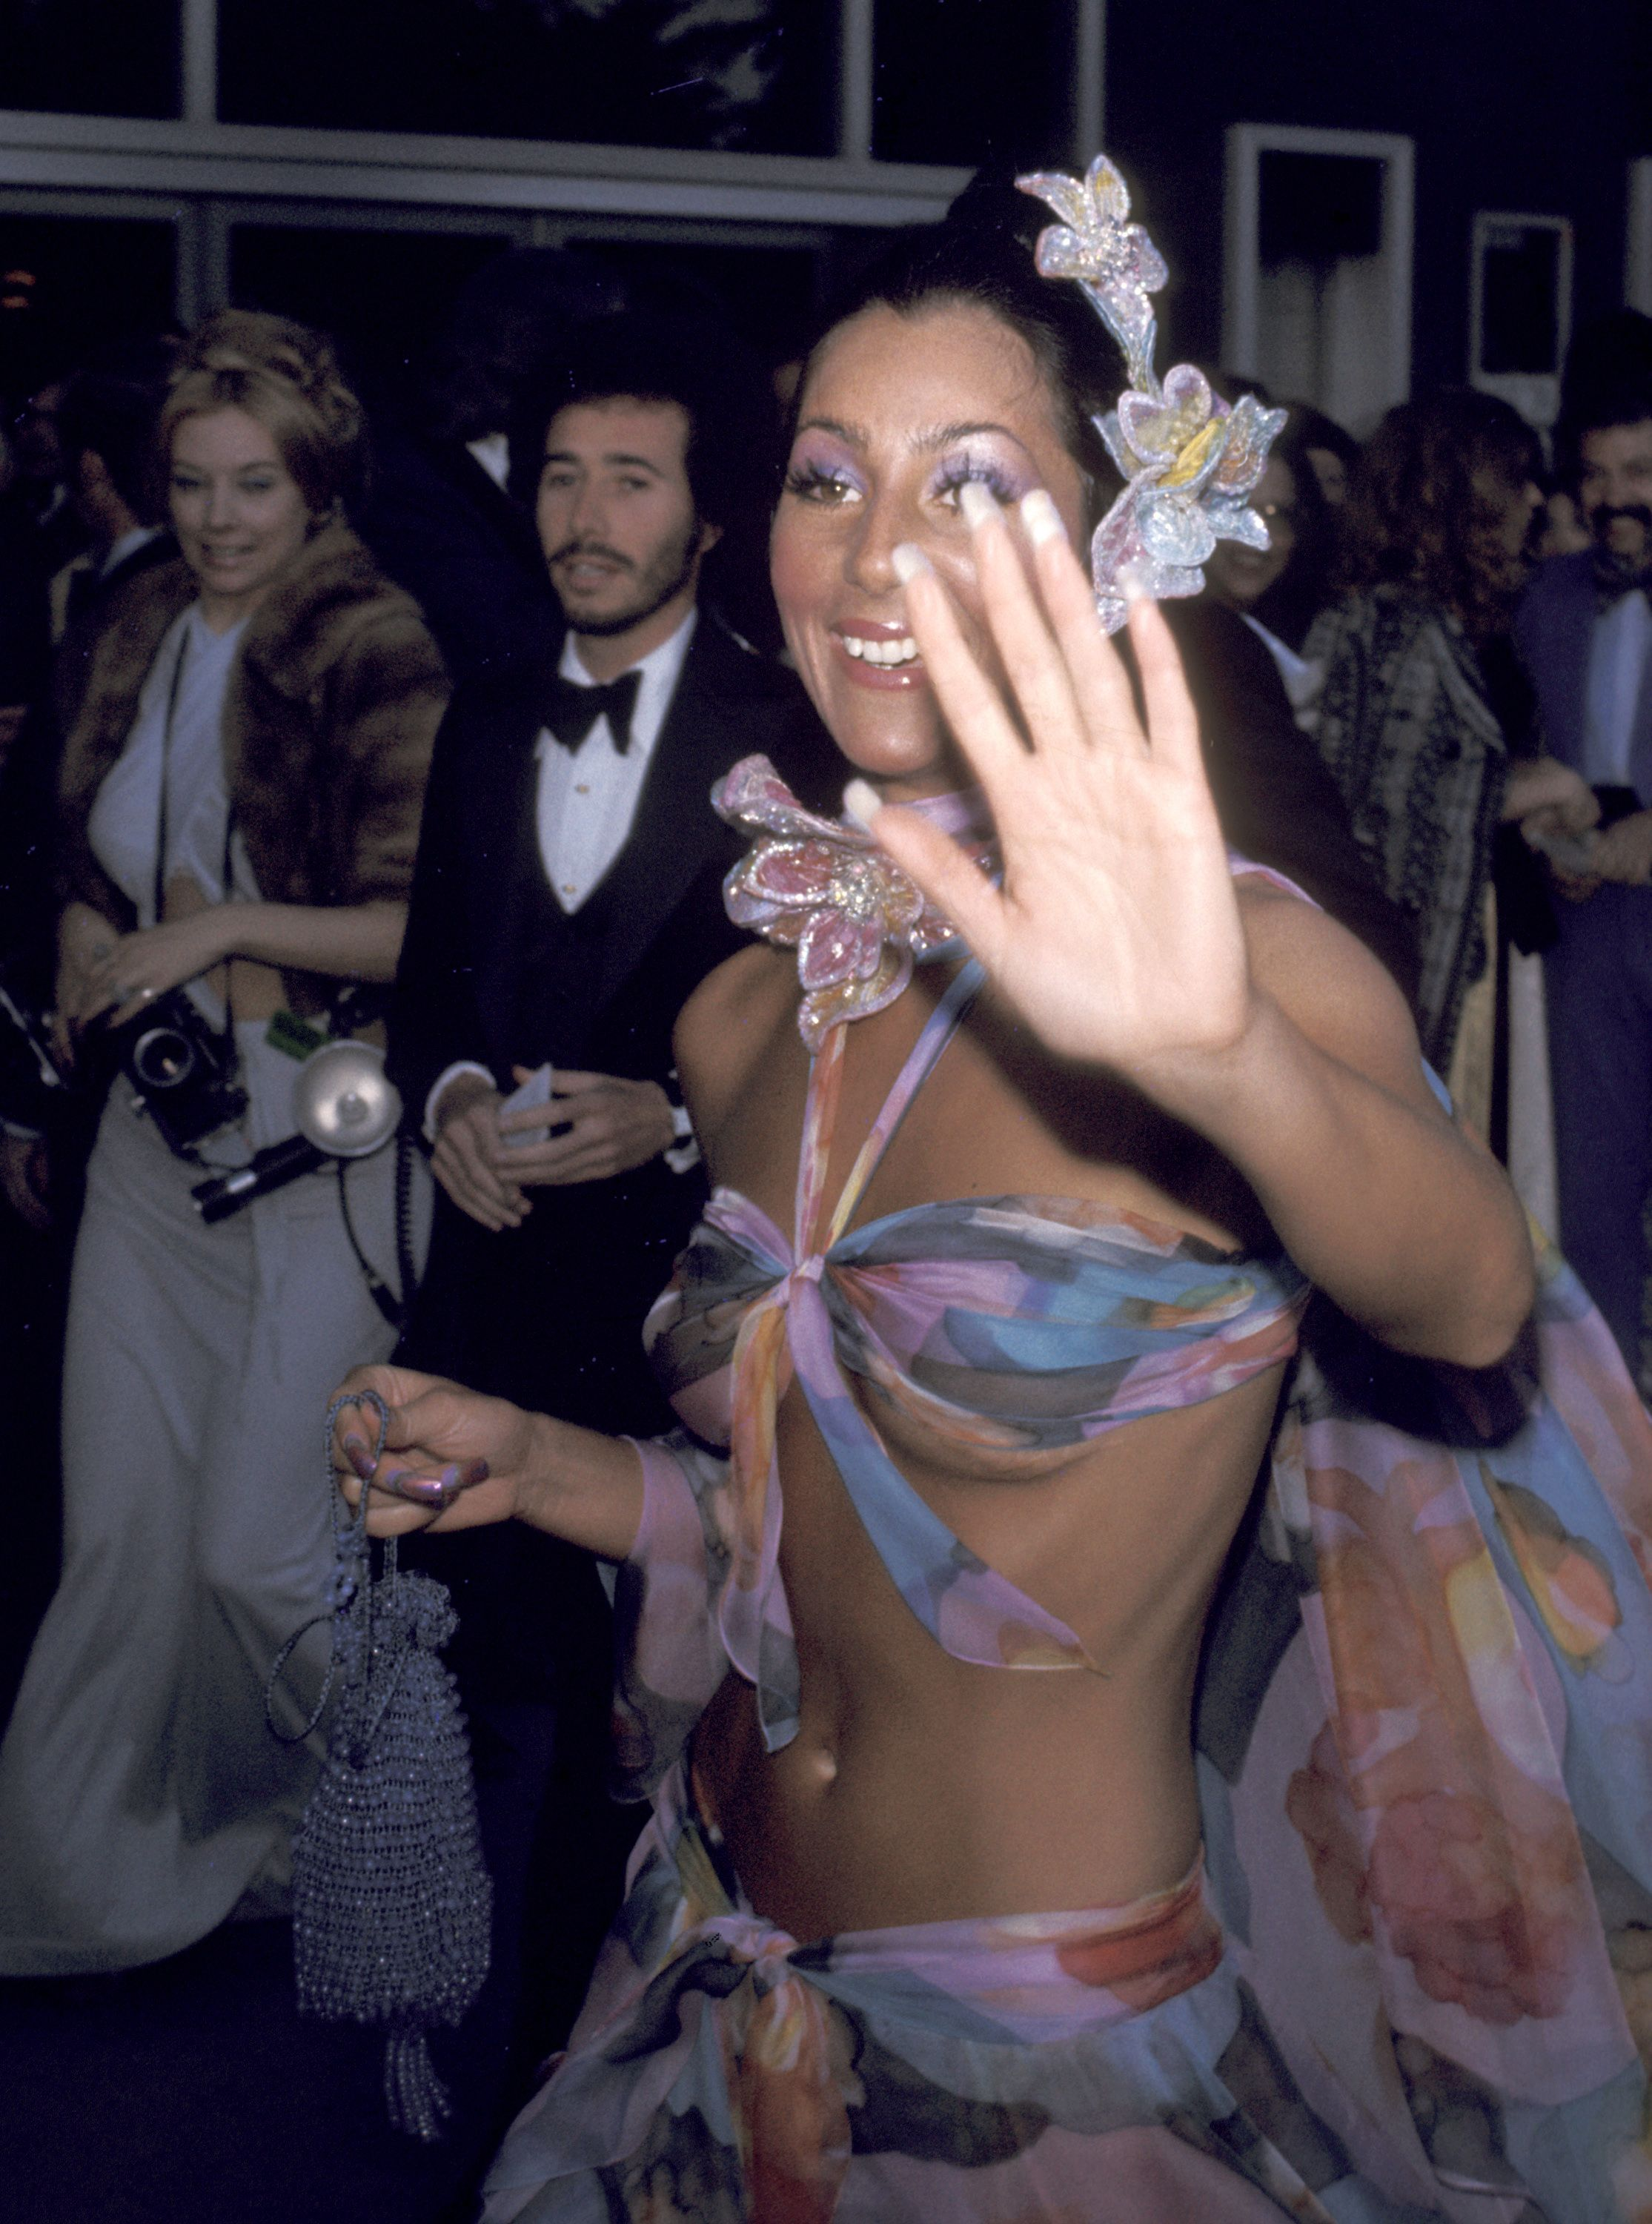 Cher Oscars Red Carpet Outfits - Cher's Best Oscar Moments